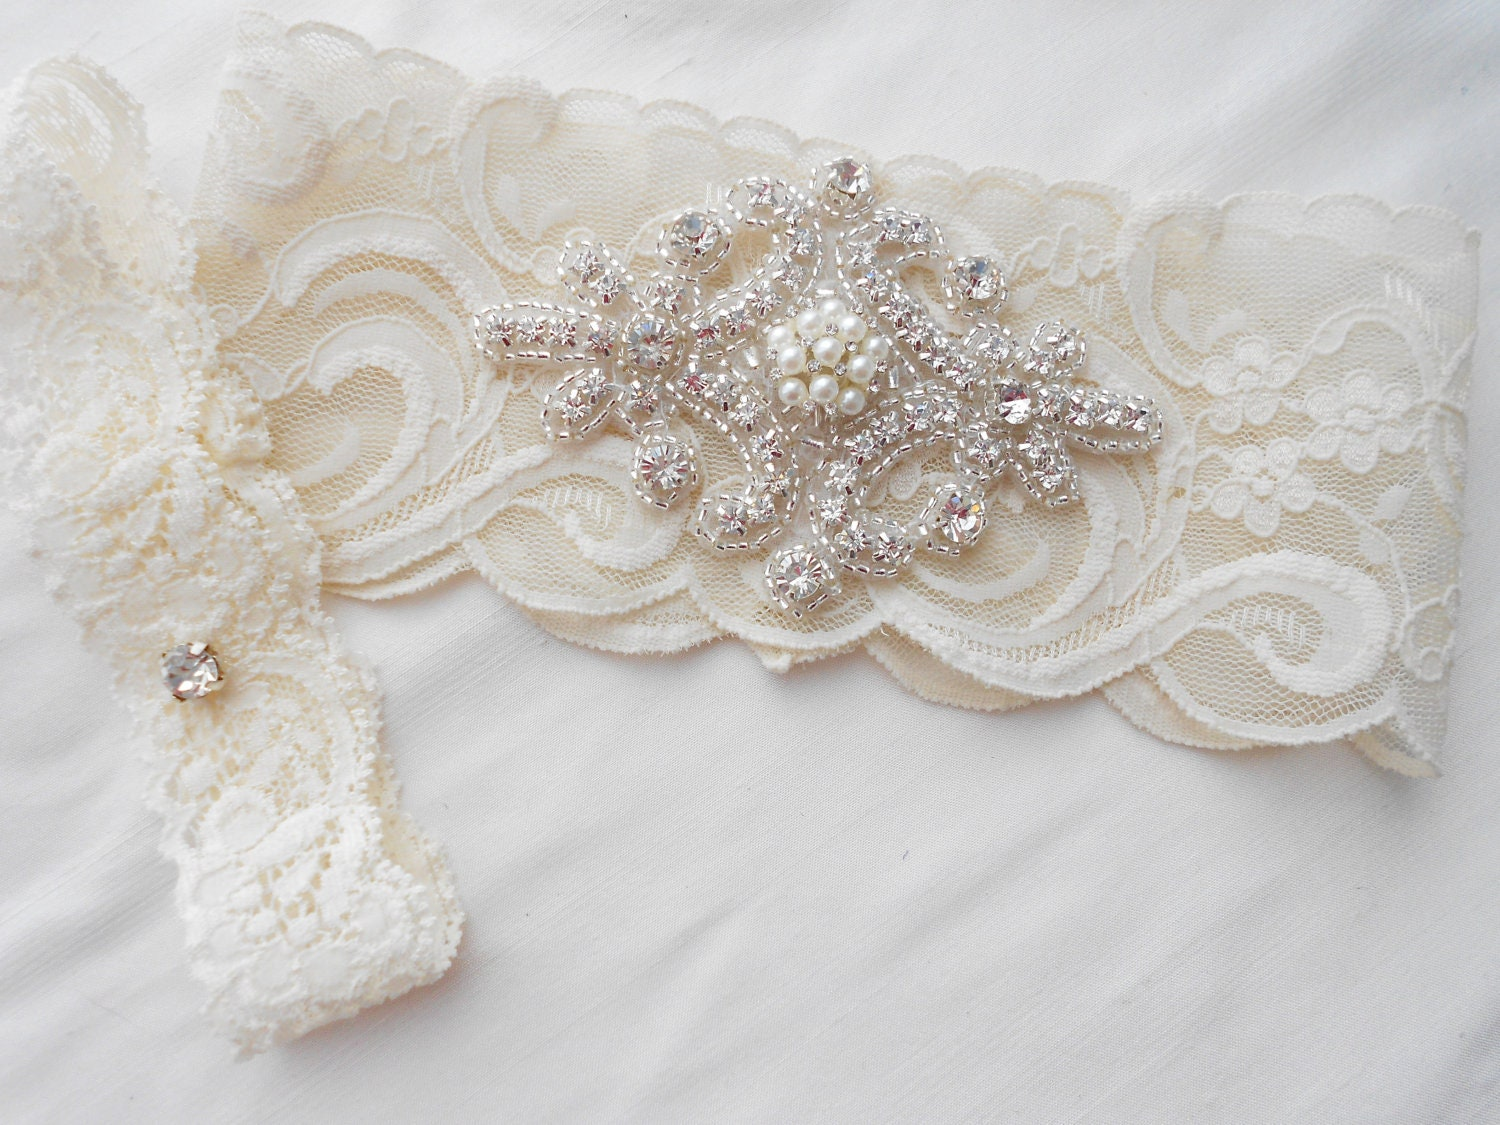 Wedding Garter Set Ivory Or Lite Ivory Stretch Lace Bridal